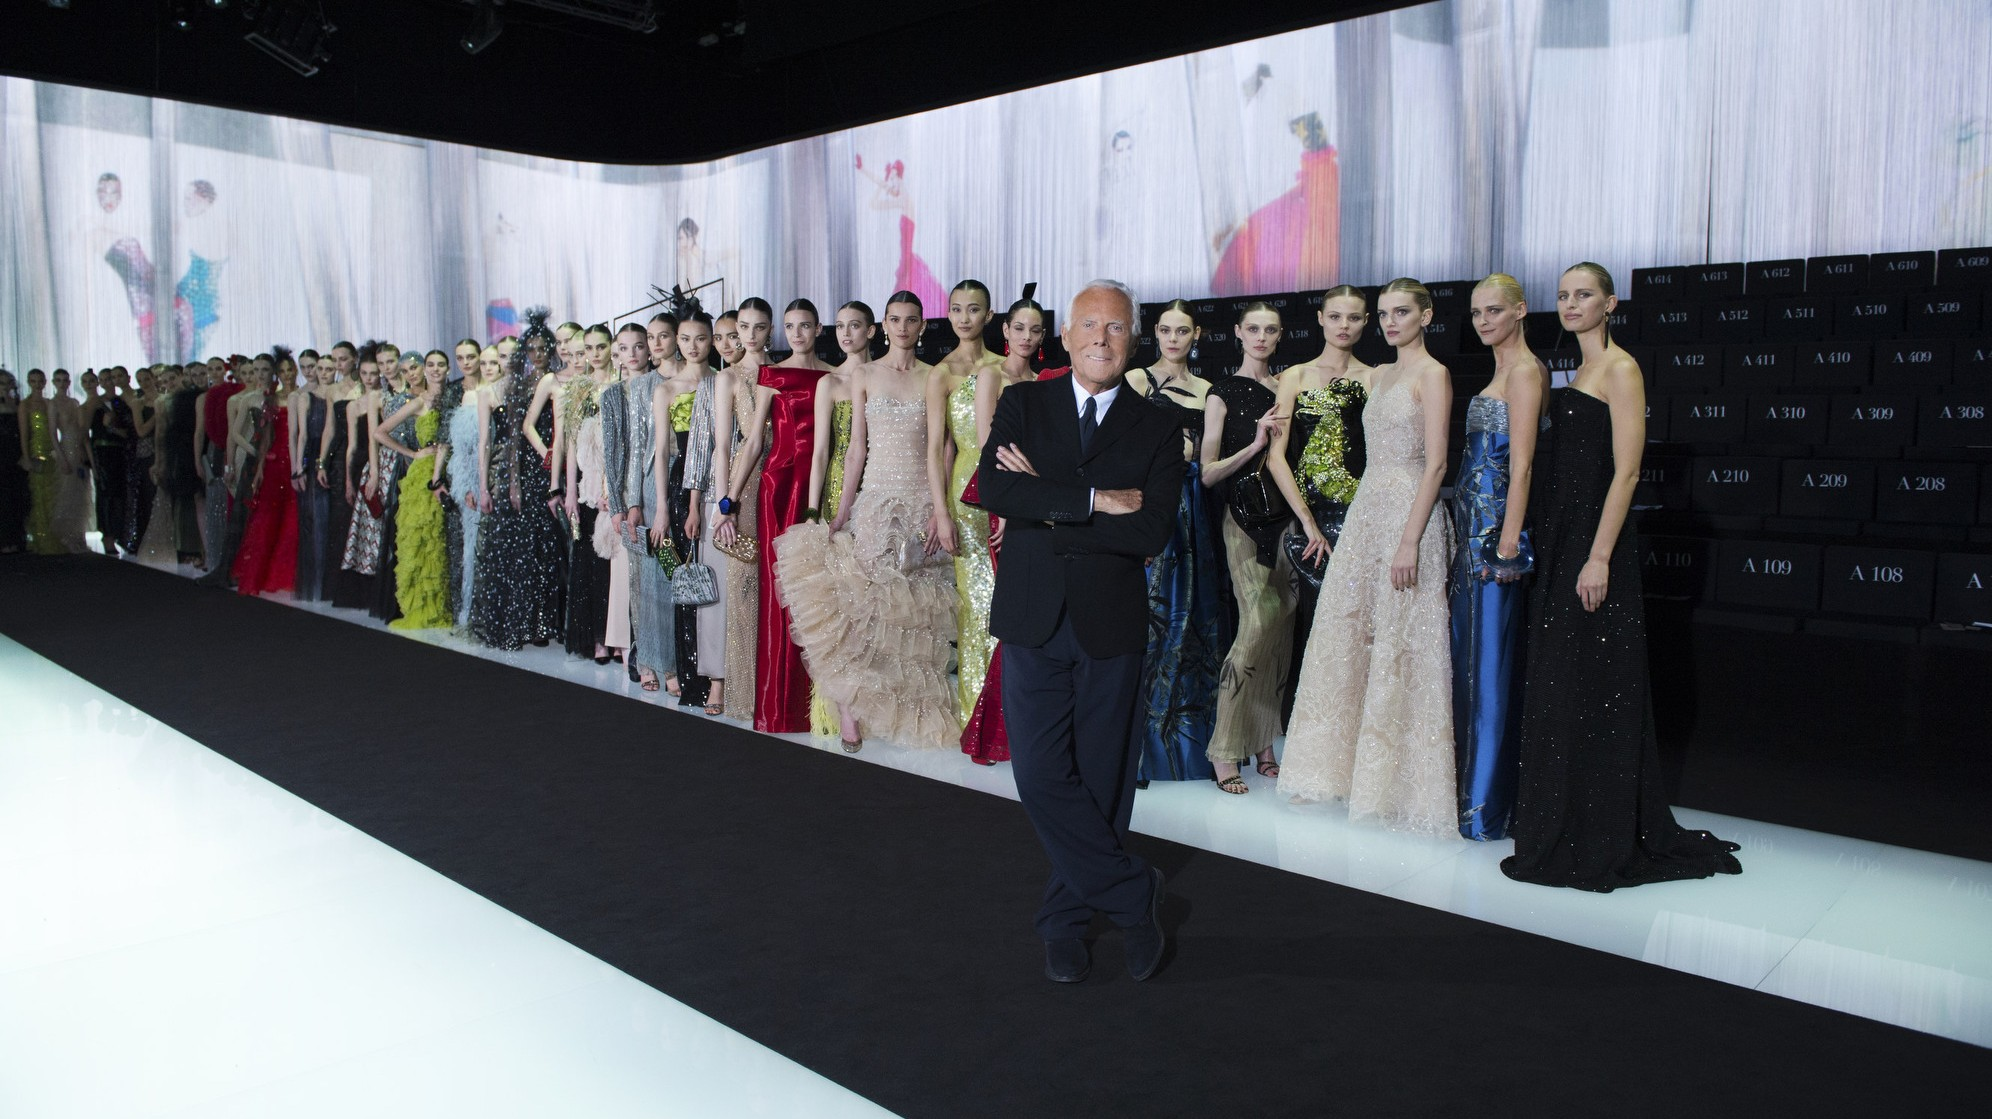 armani fetes 40th anniversary with a fleet of famous friends